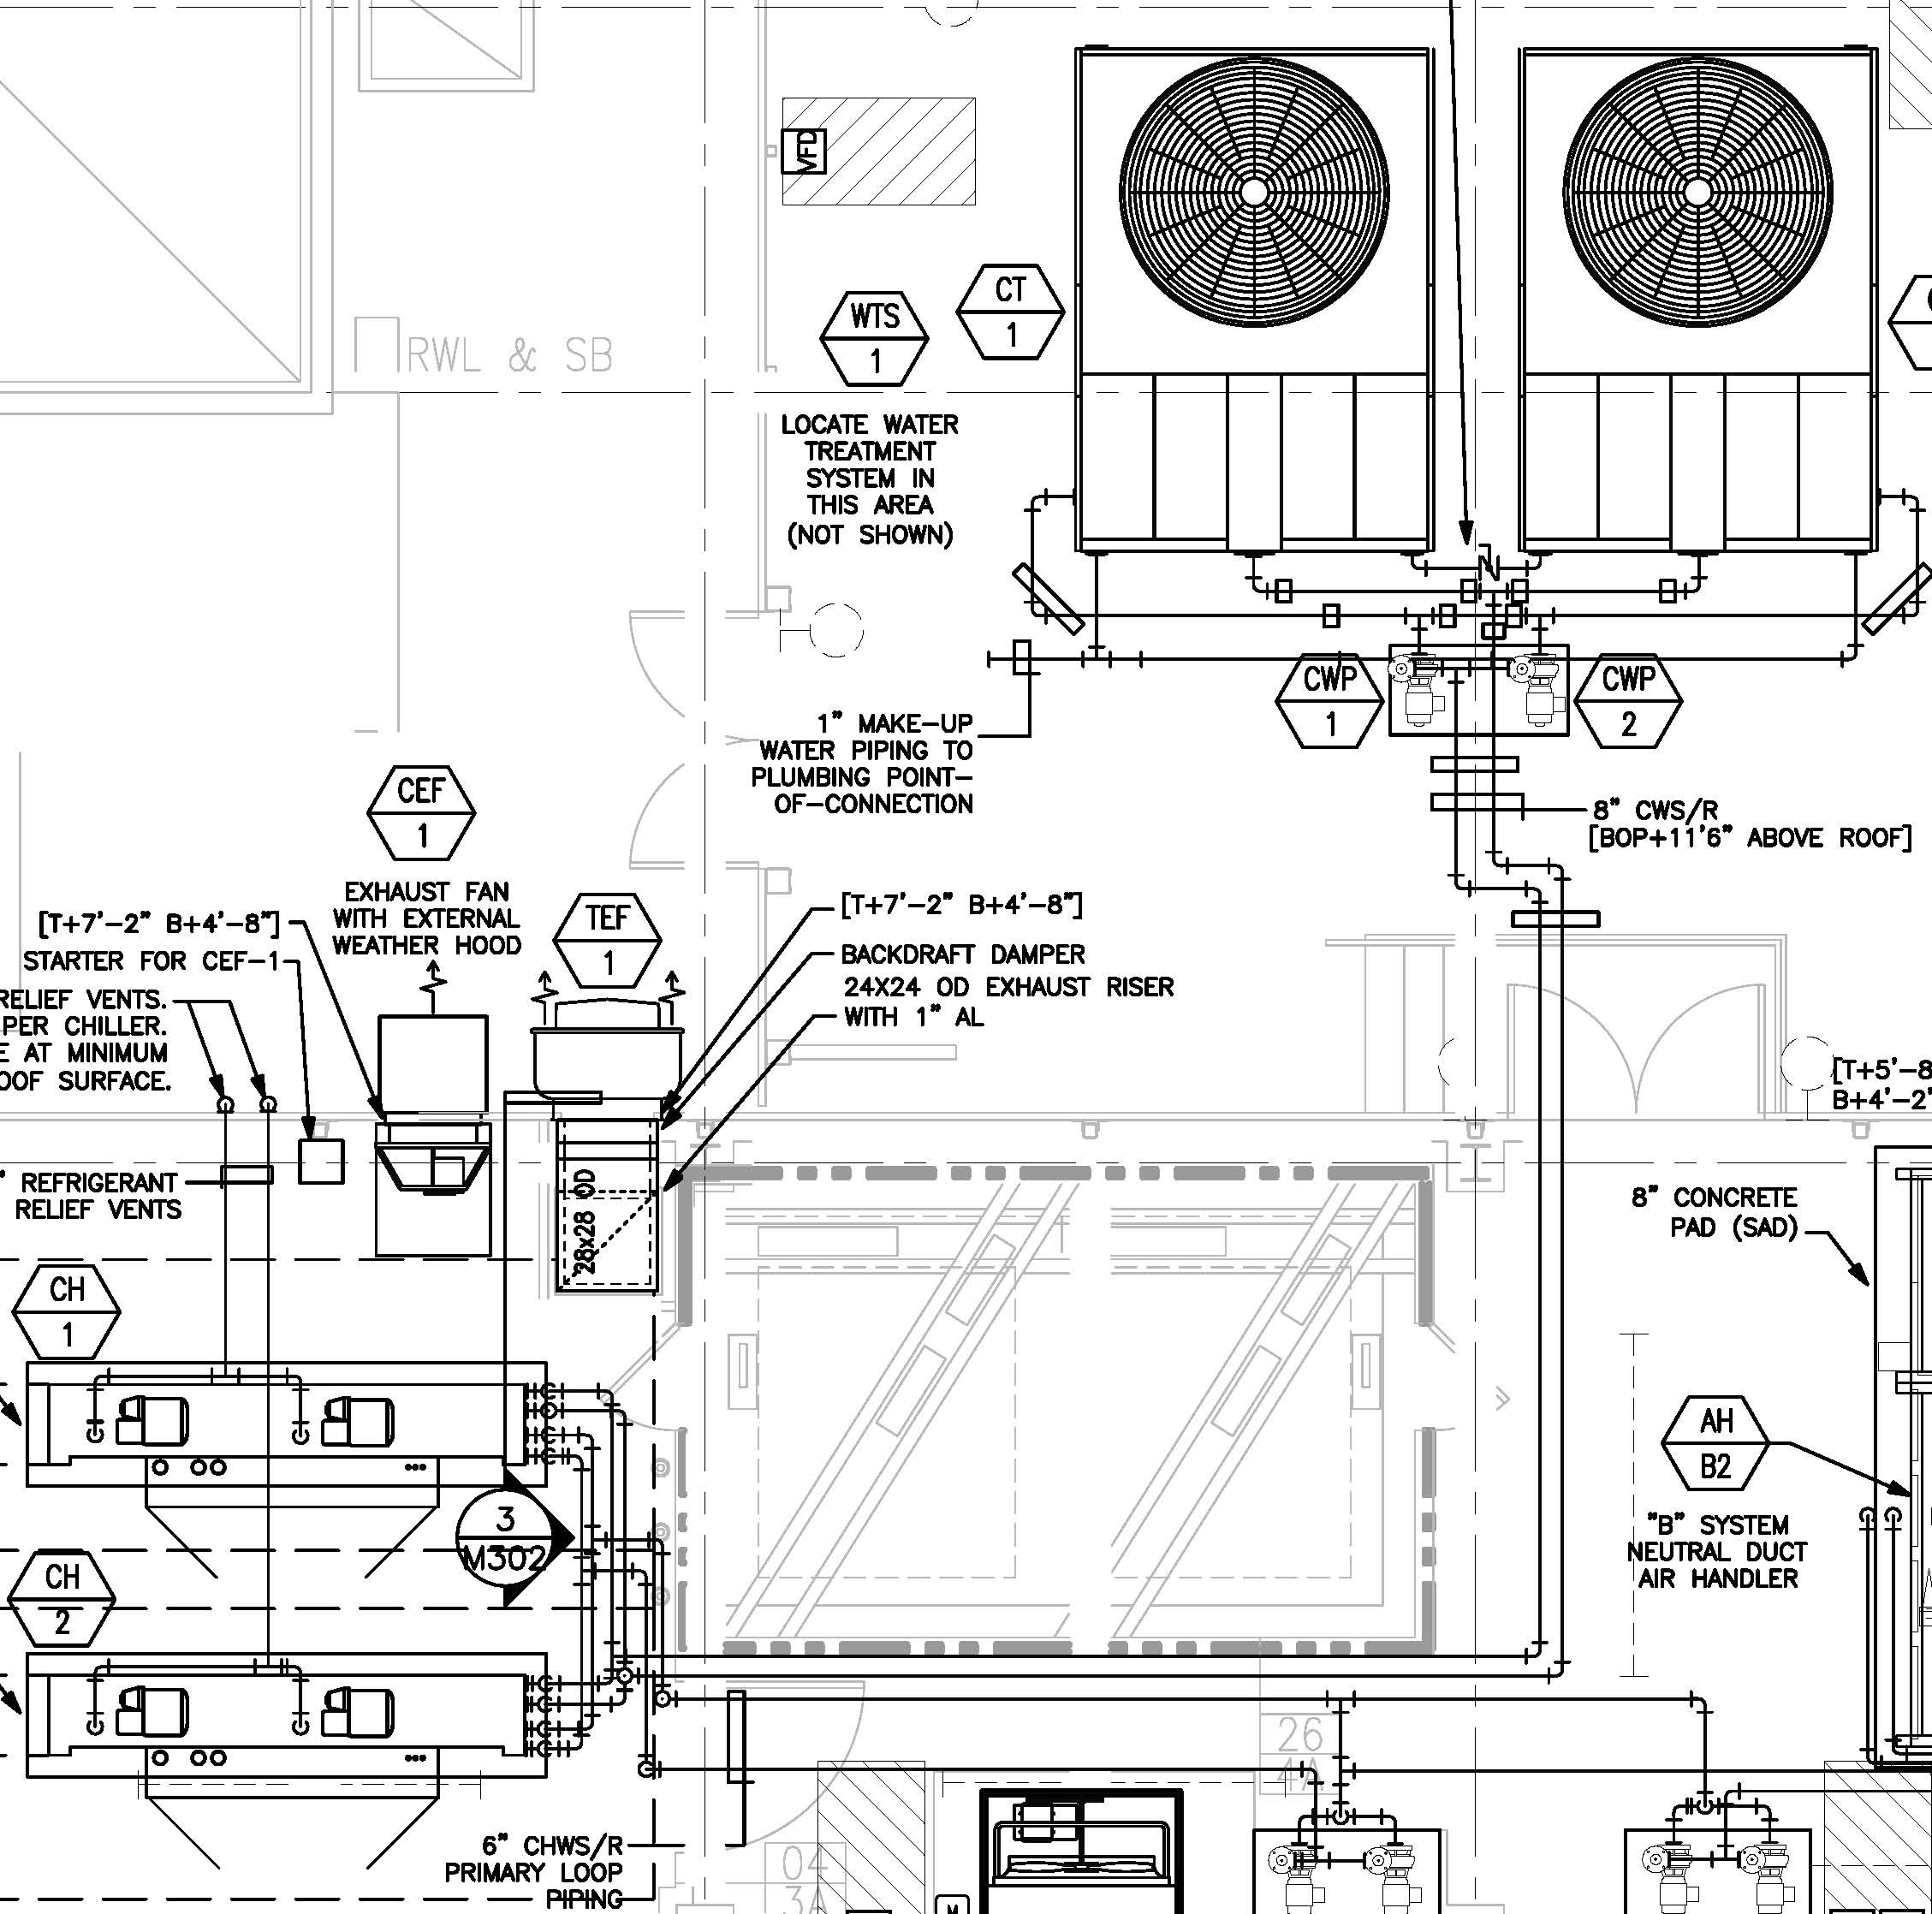 Chilled Water Piping Diagram